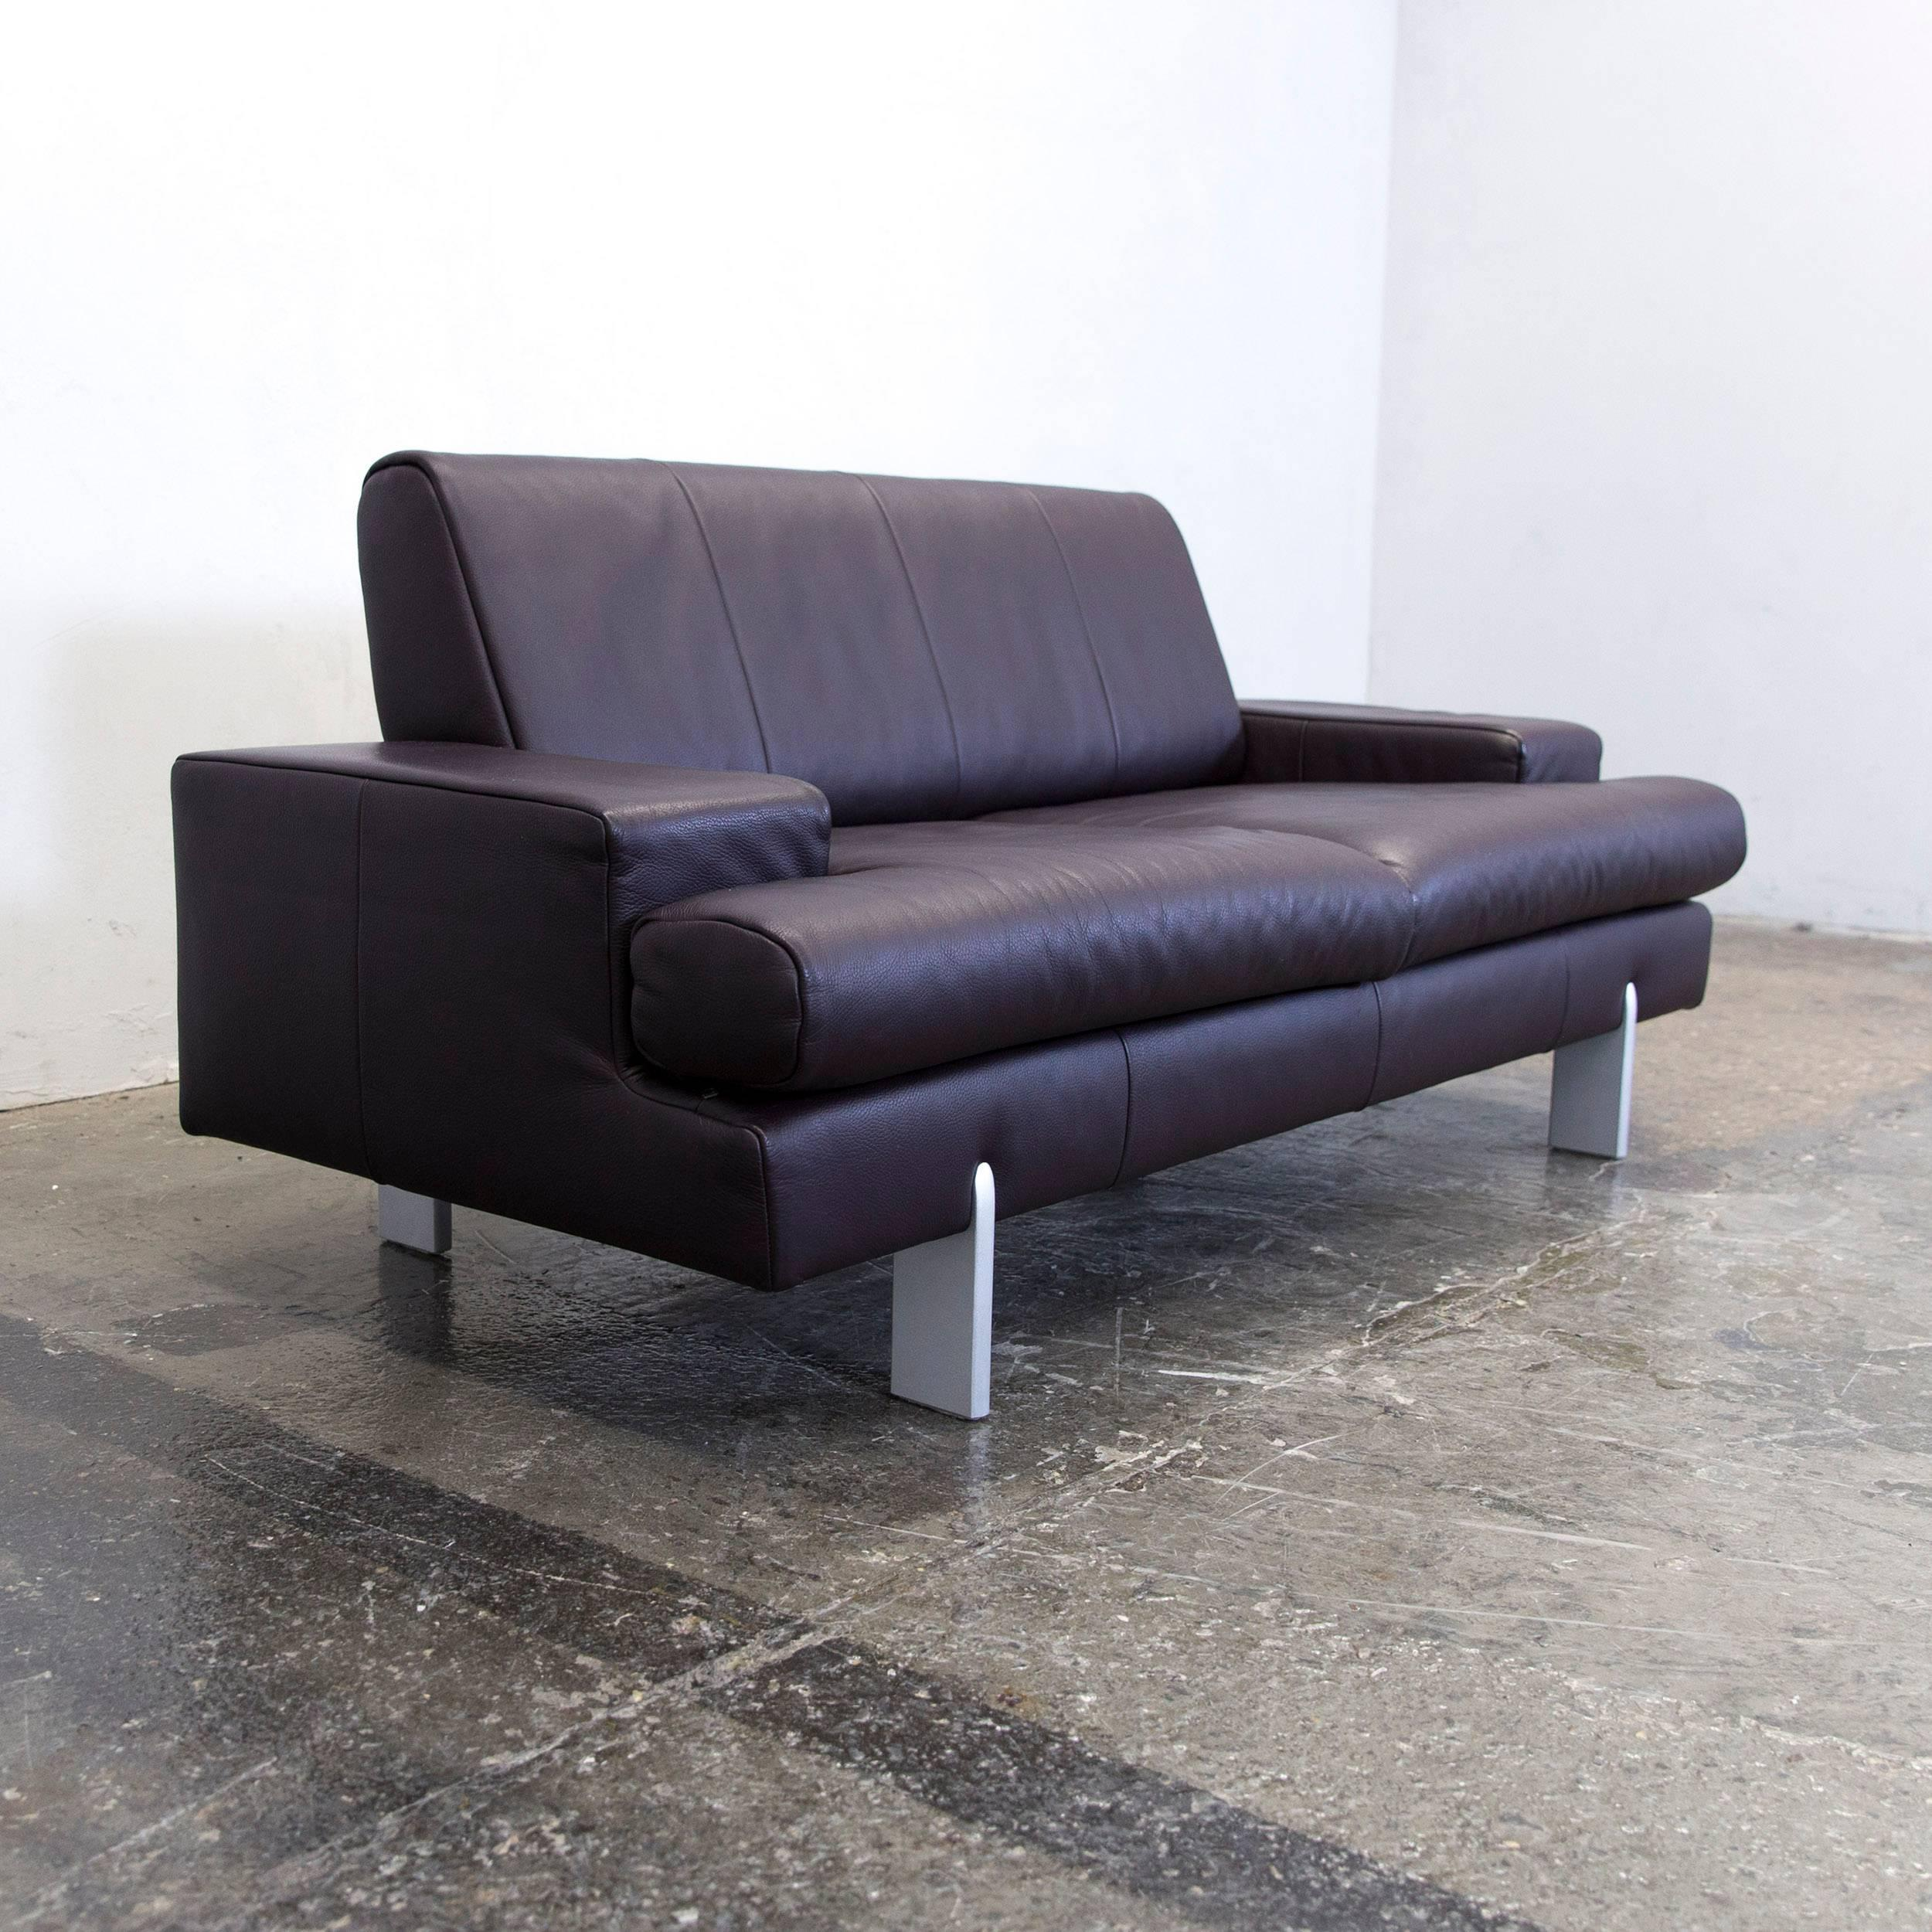 Rolf Benz Designer Leather Sofa Set Aubergine Lilac Purple Two Seat Couch Modern For At 1stdibs